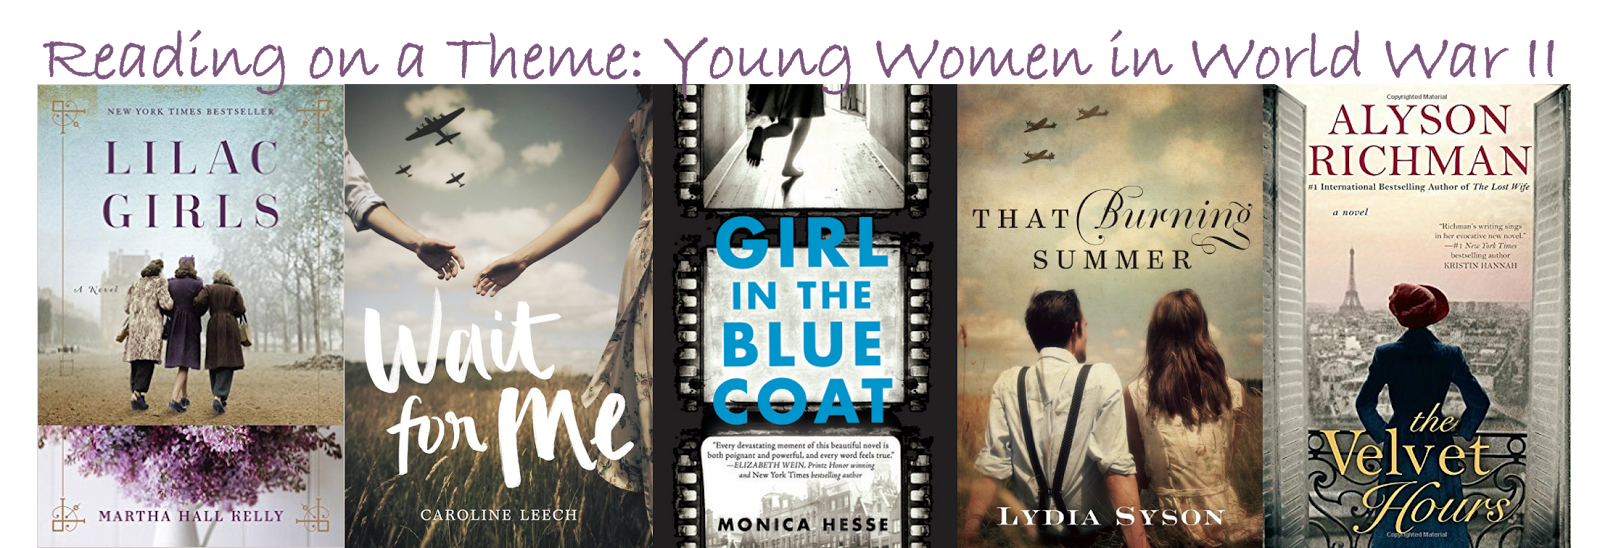 Intellectual Recreation: Reading on a Theme: Young Women in